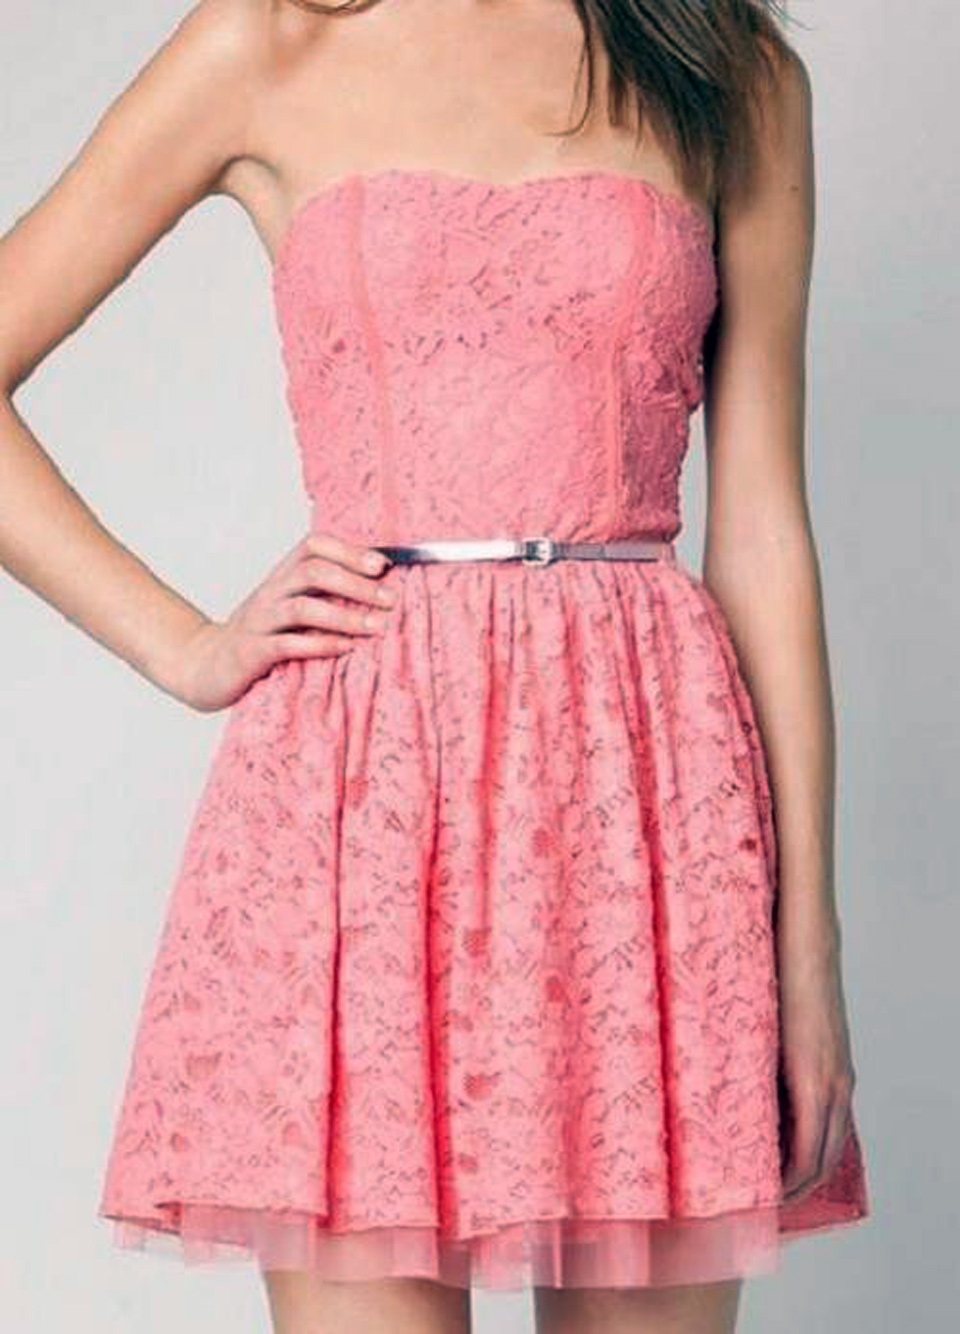 Cute pink dress tumblr Style me pink fashion show